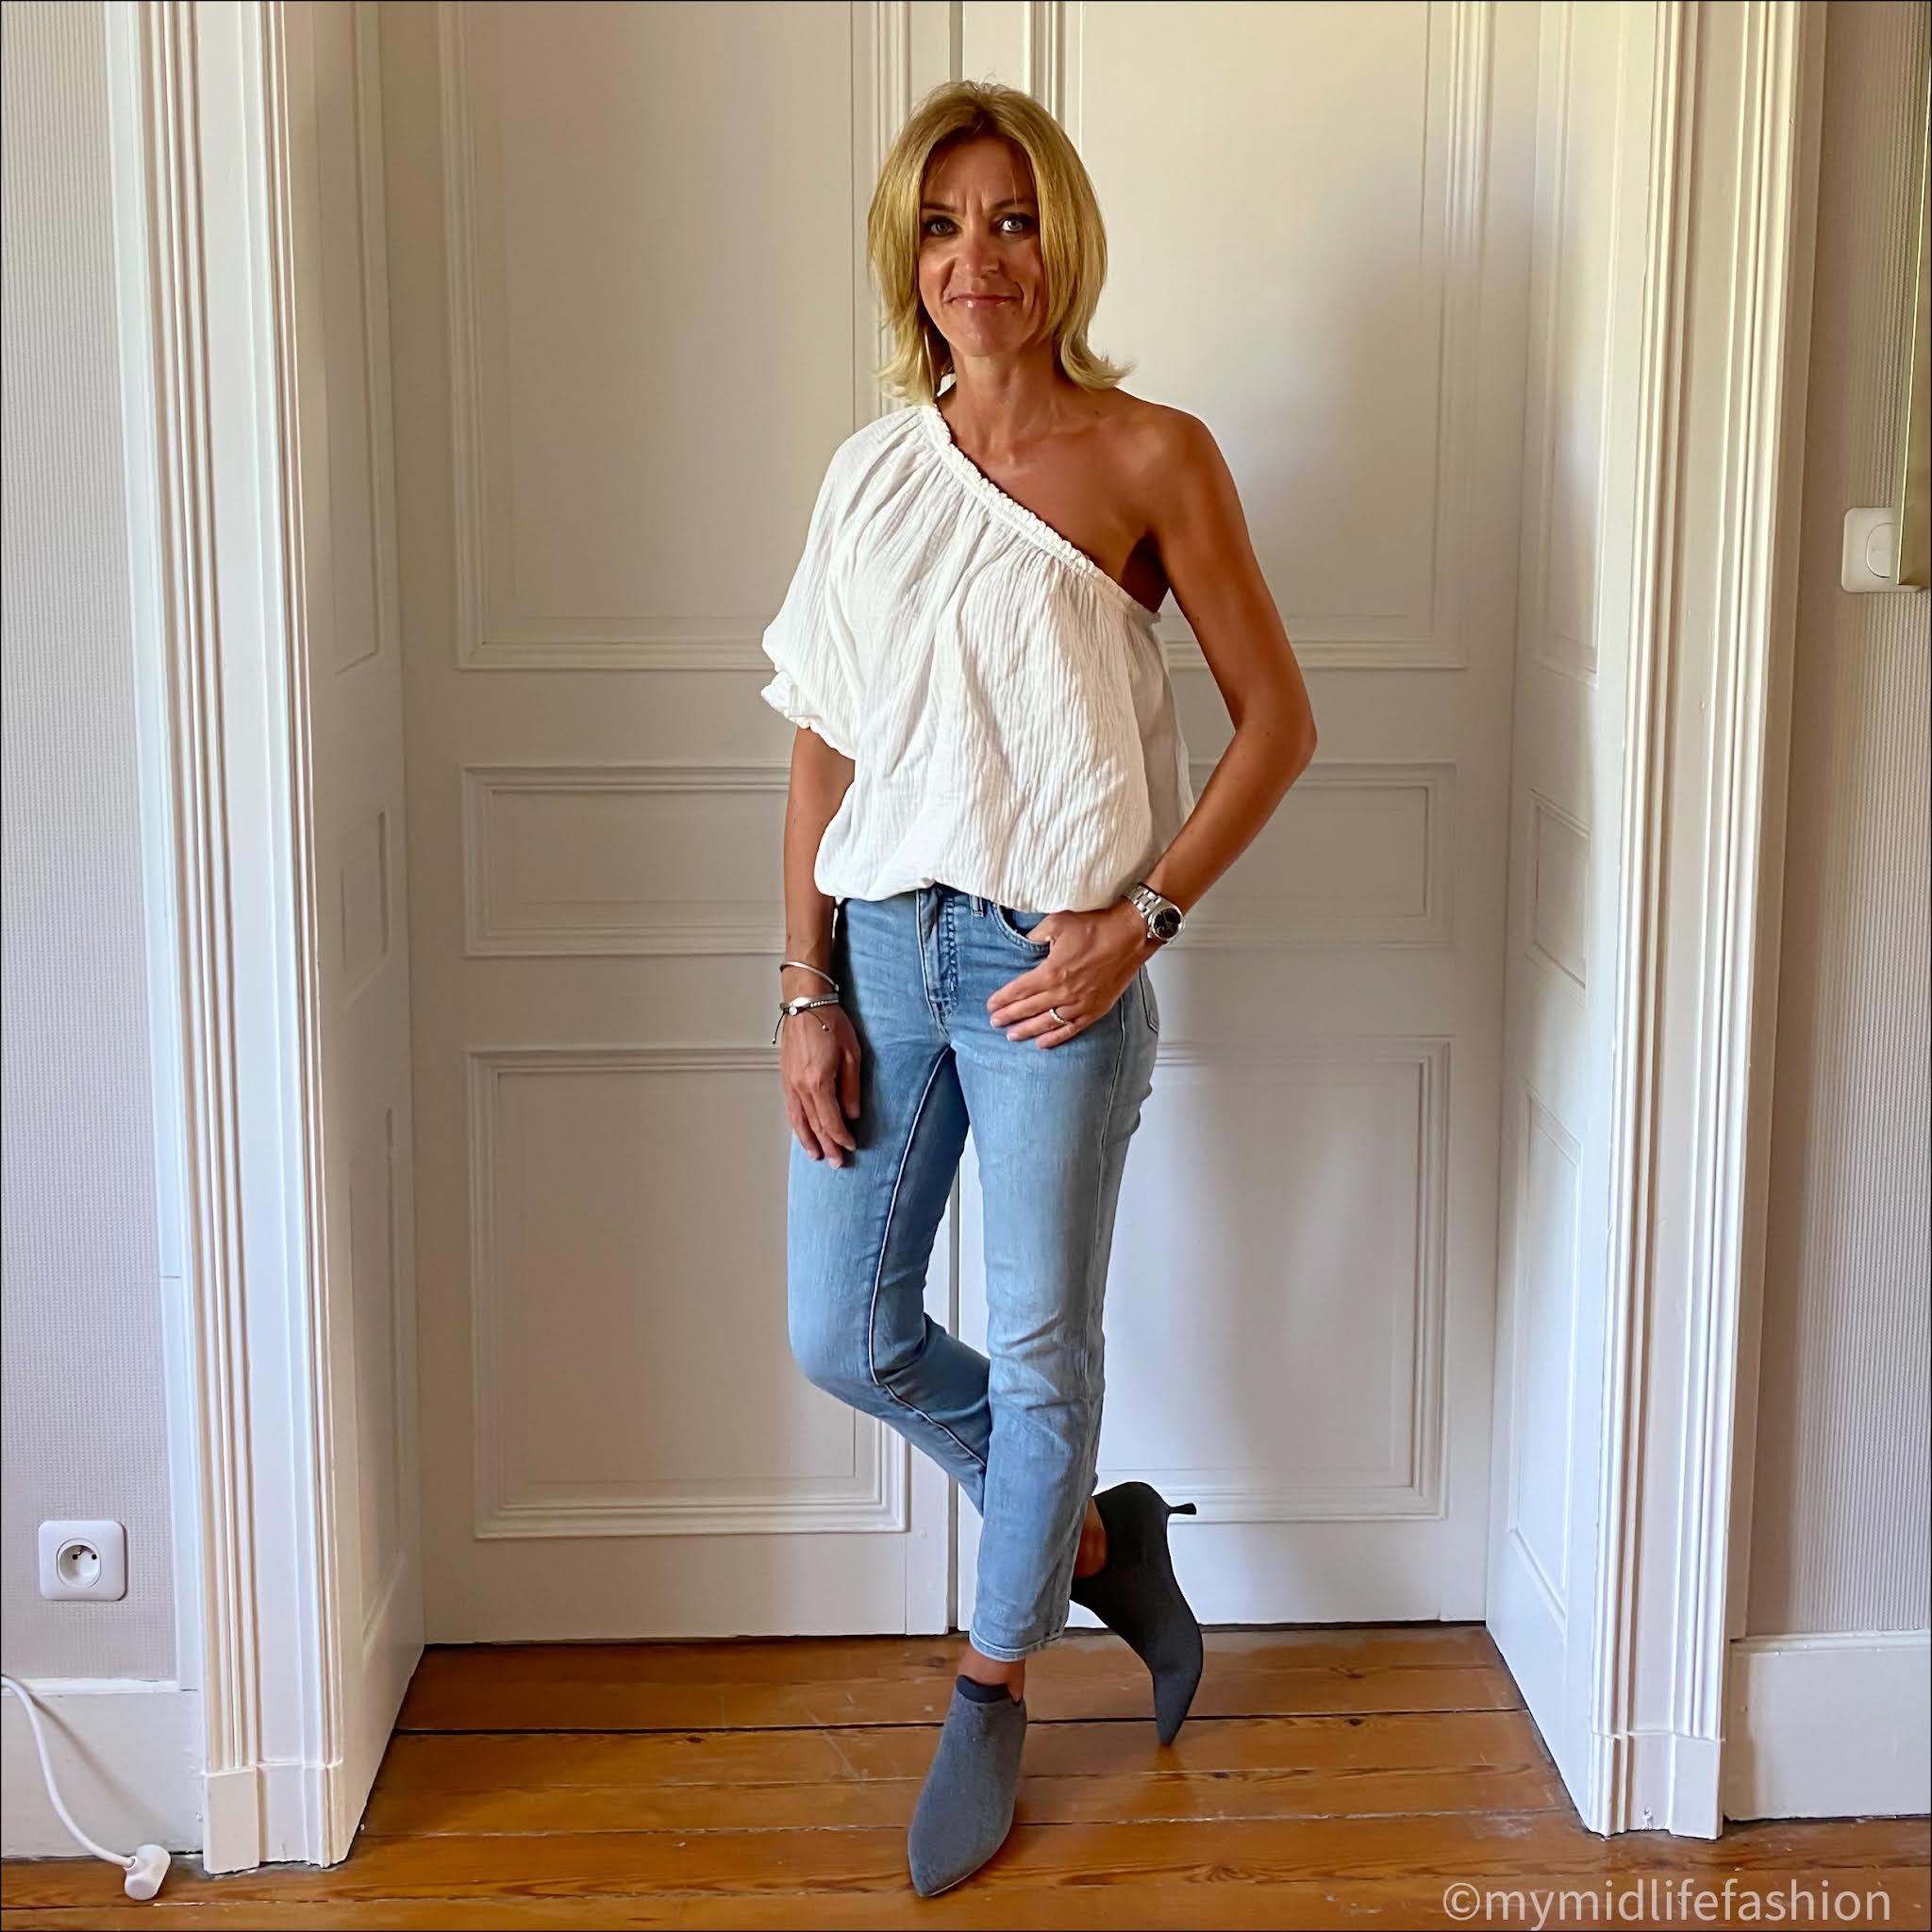 my midlife fashion, vivaia collection, vivaia collection rich grey ankle boots, grunge mama Amy top, Ralph Lauren straight legged cropped jeans